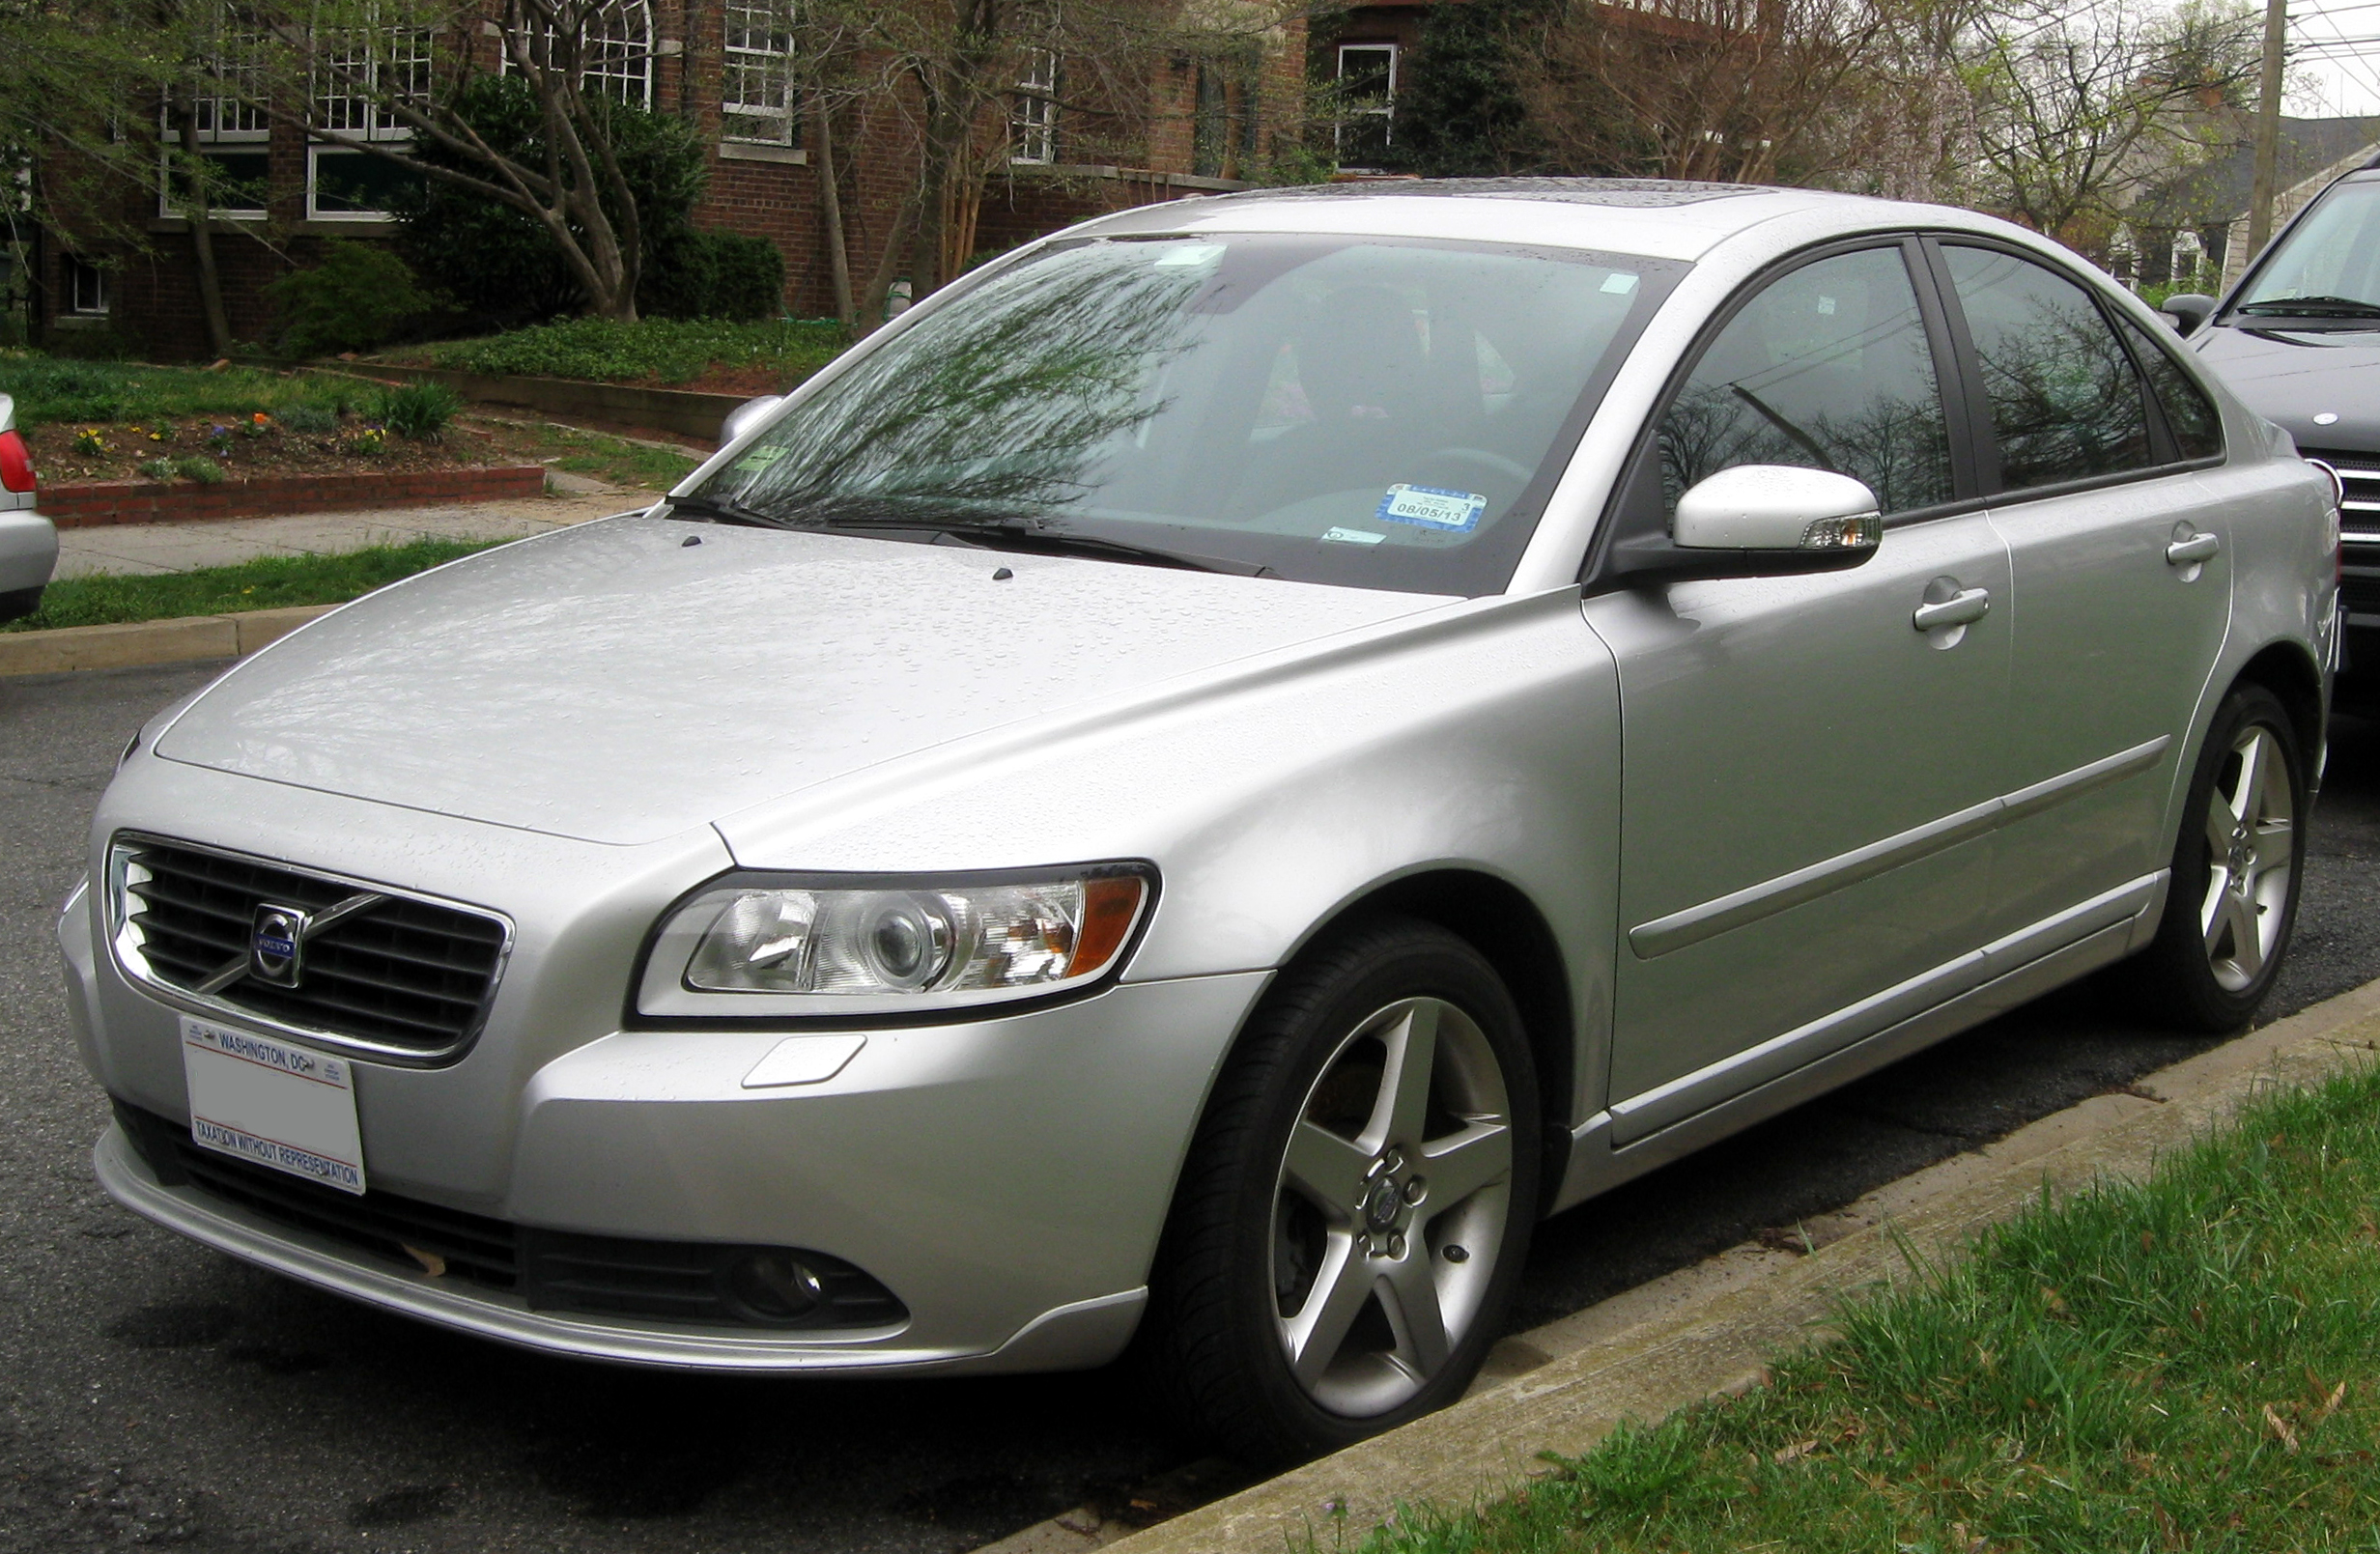 file:2008-2011 volvo s40 -- 03-21-2012 2 - wikimedia commons